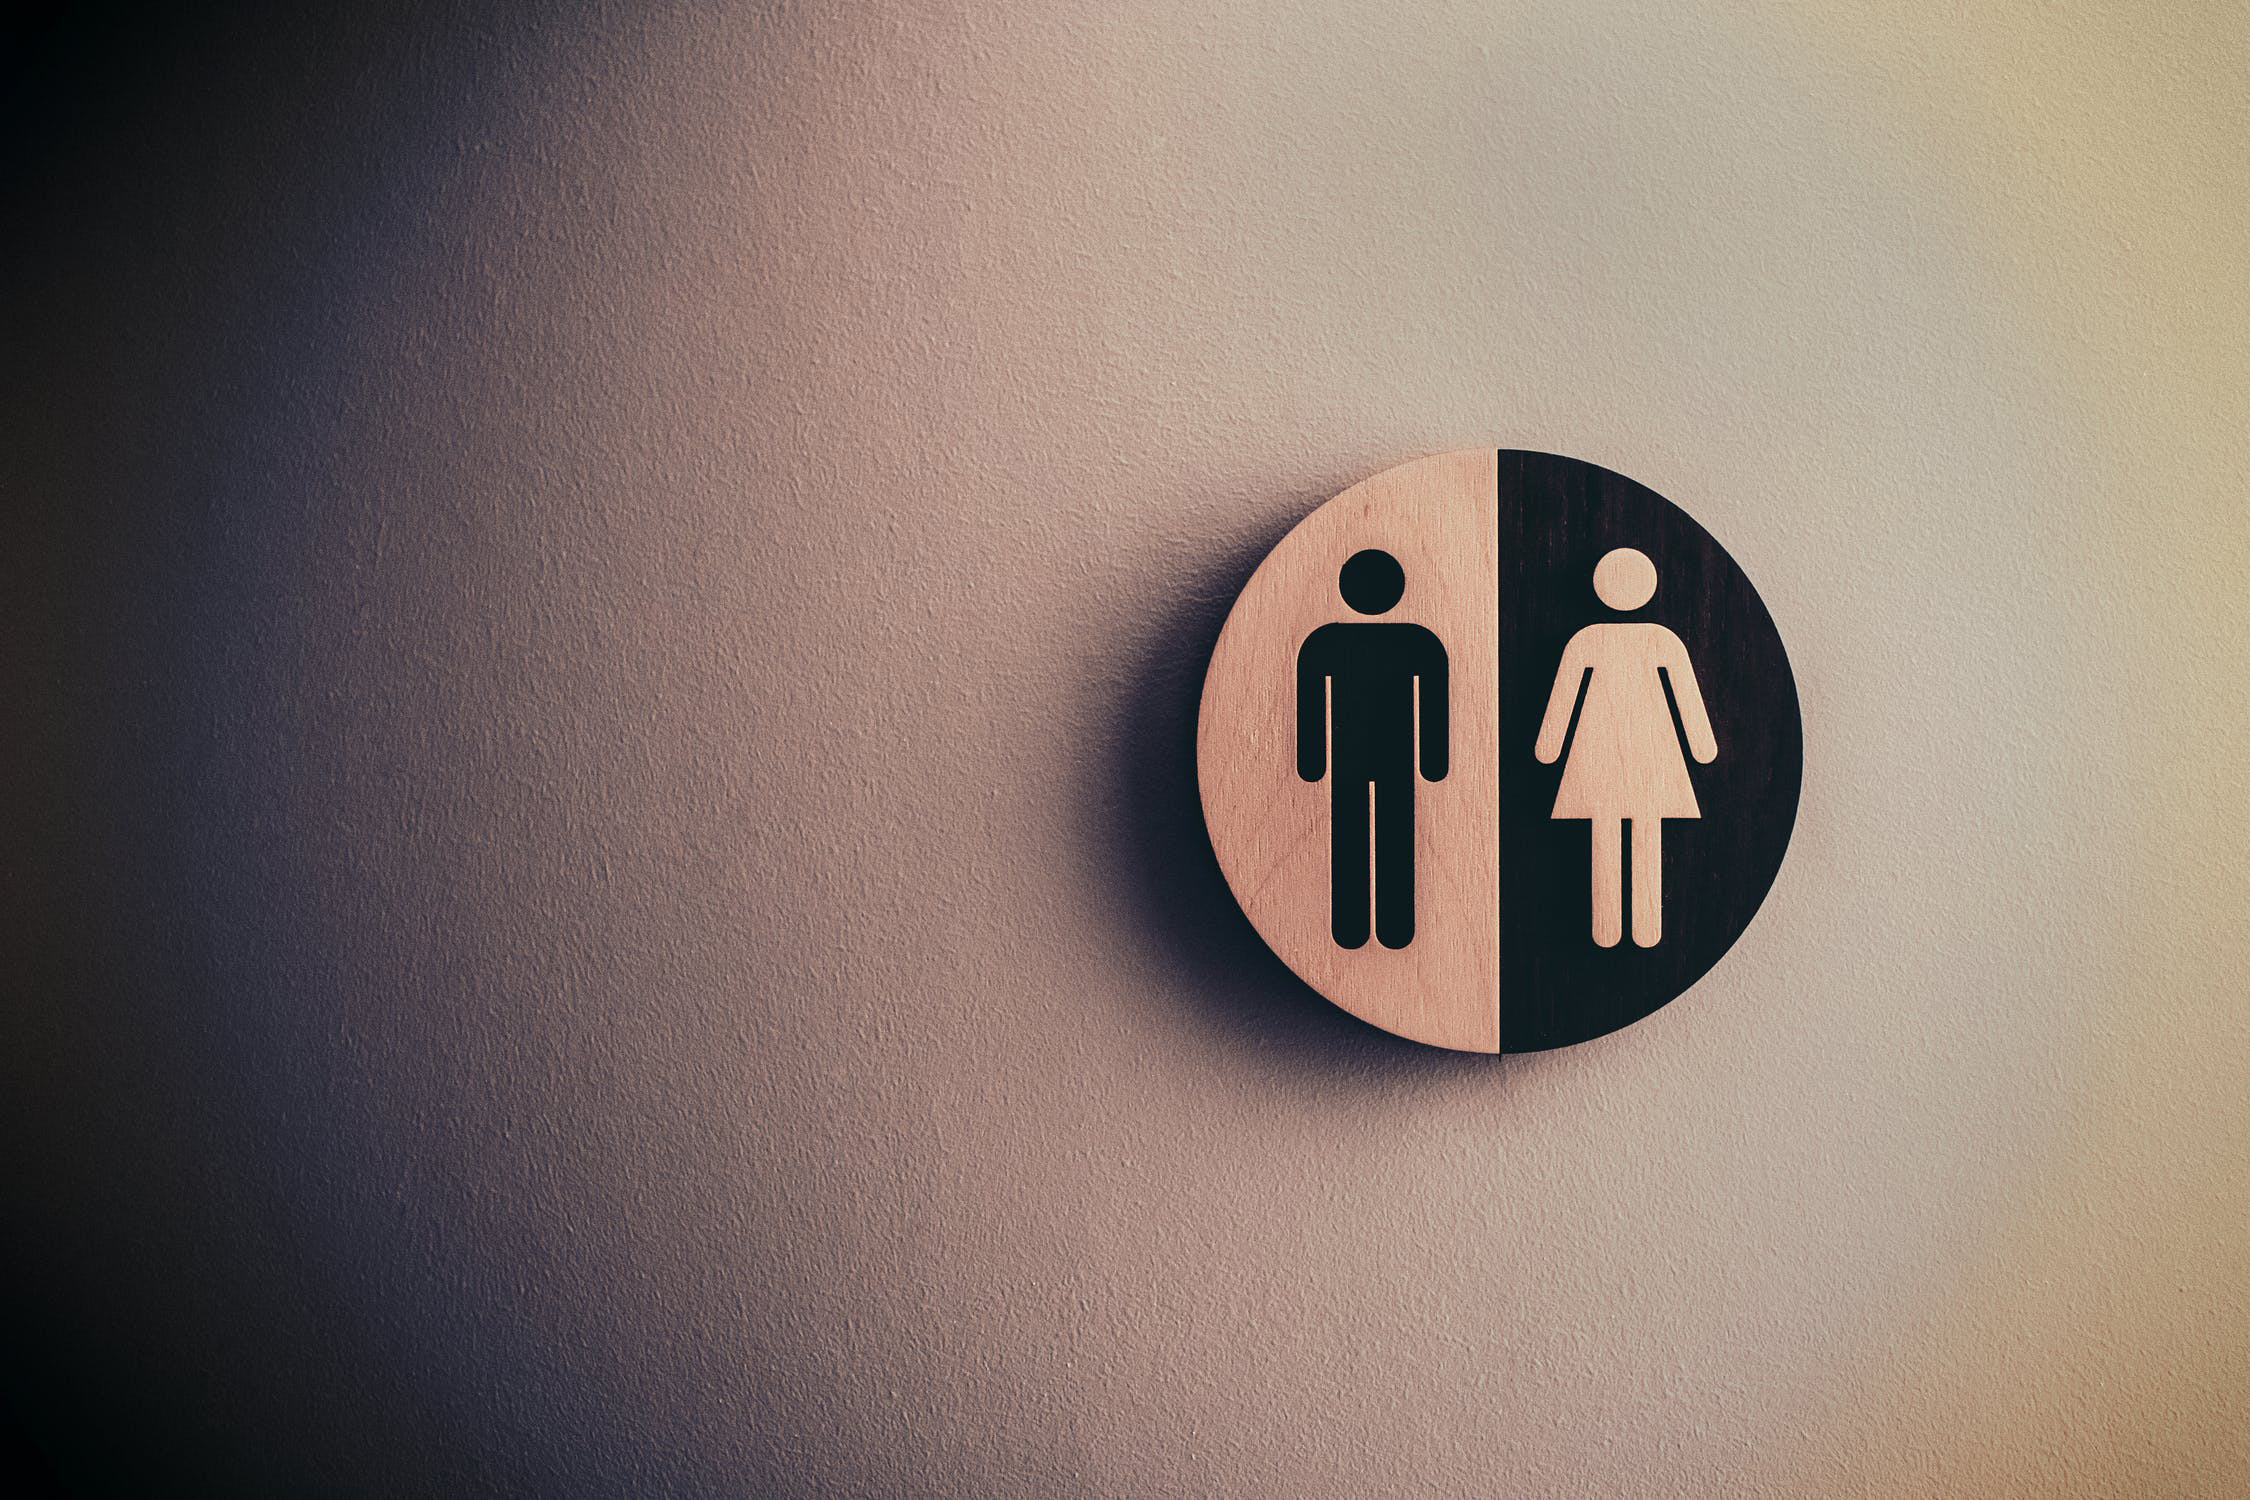 12 Bathroom facts you didn't know you needed!